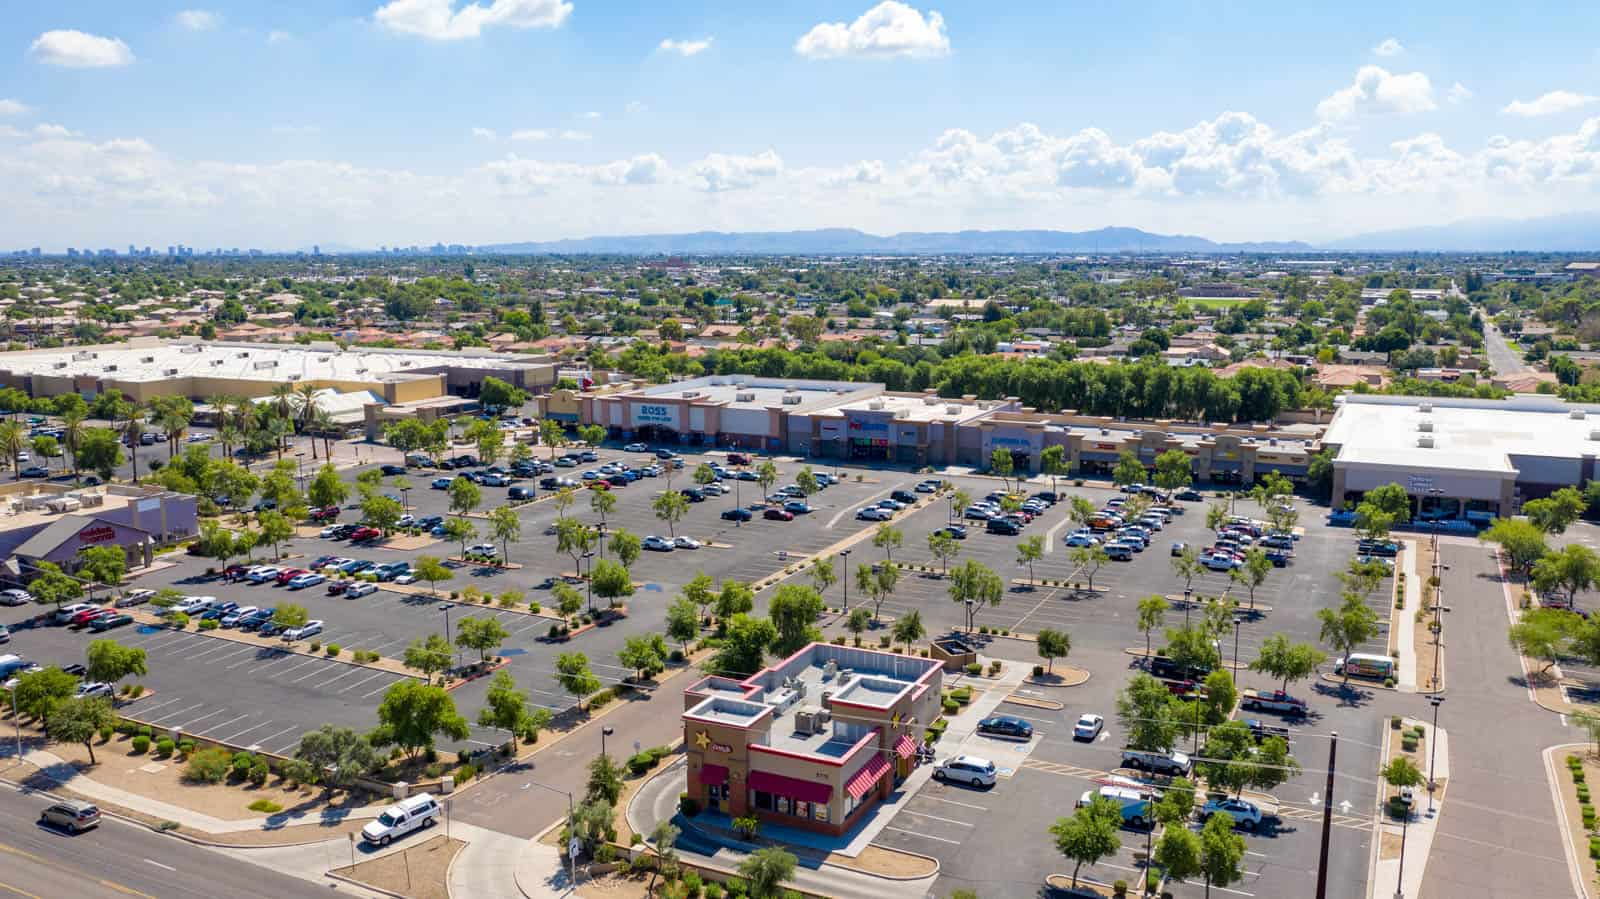 aerial drone photo of commercial strip mall